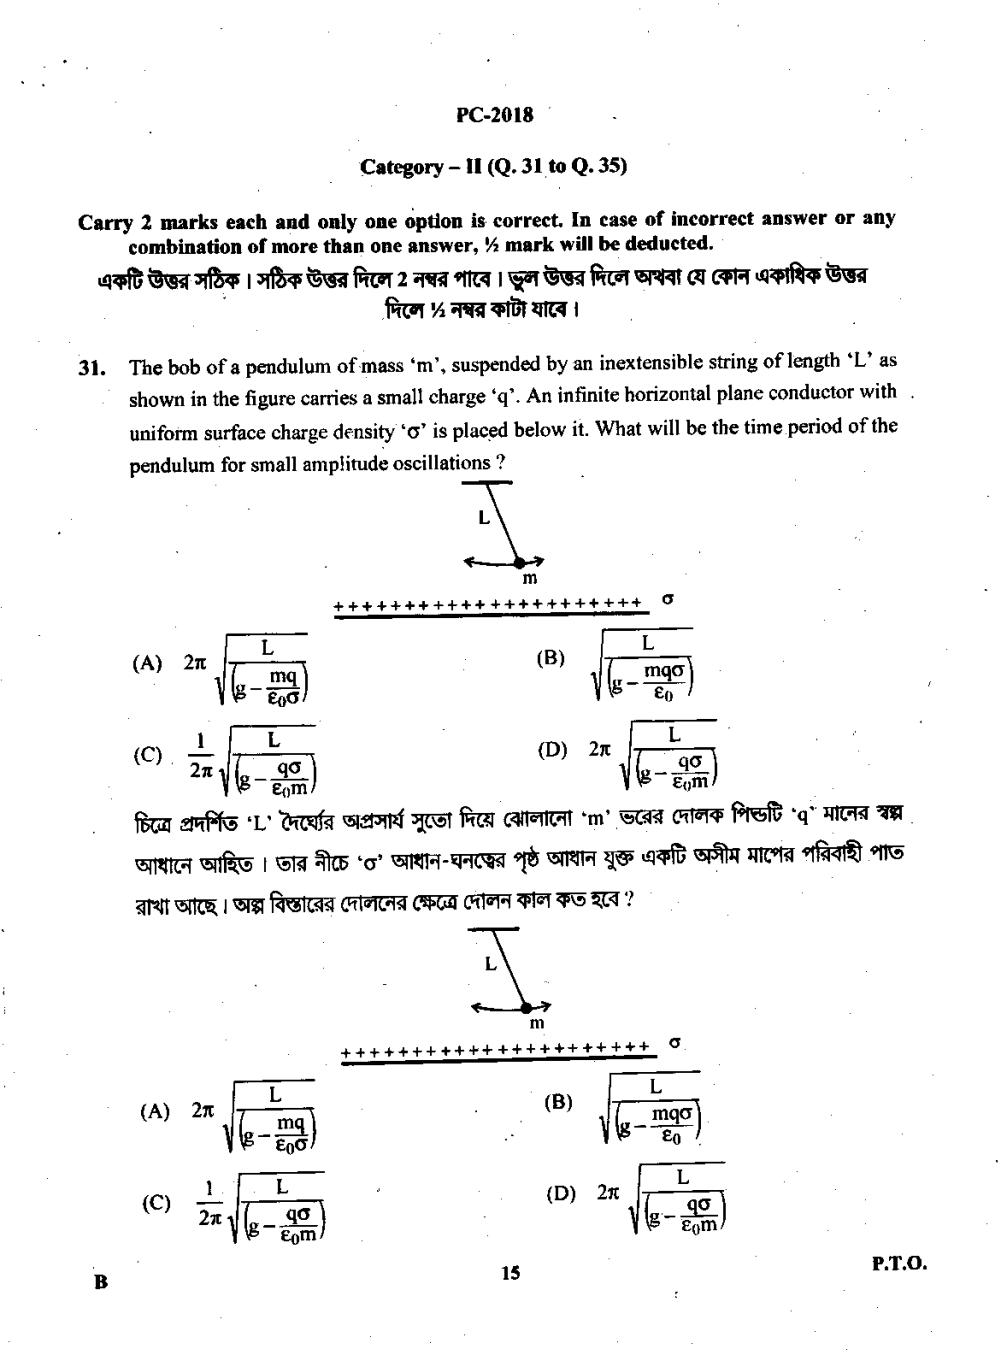 WBJEE 2018 Question Papers PDF Download – AglaSem Admission